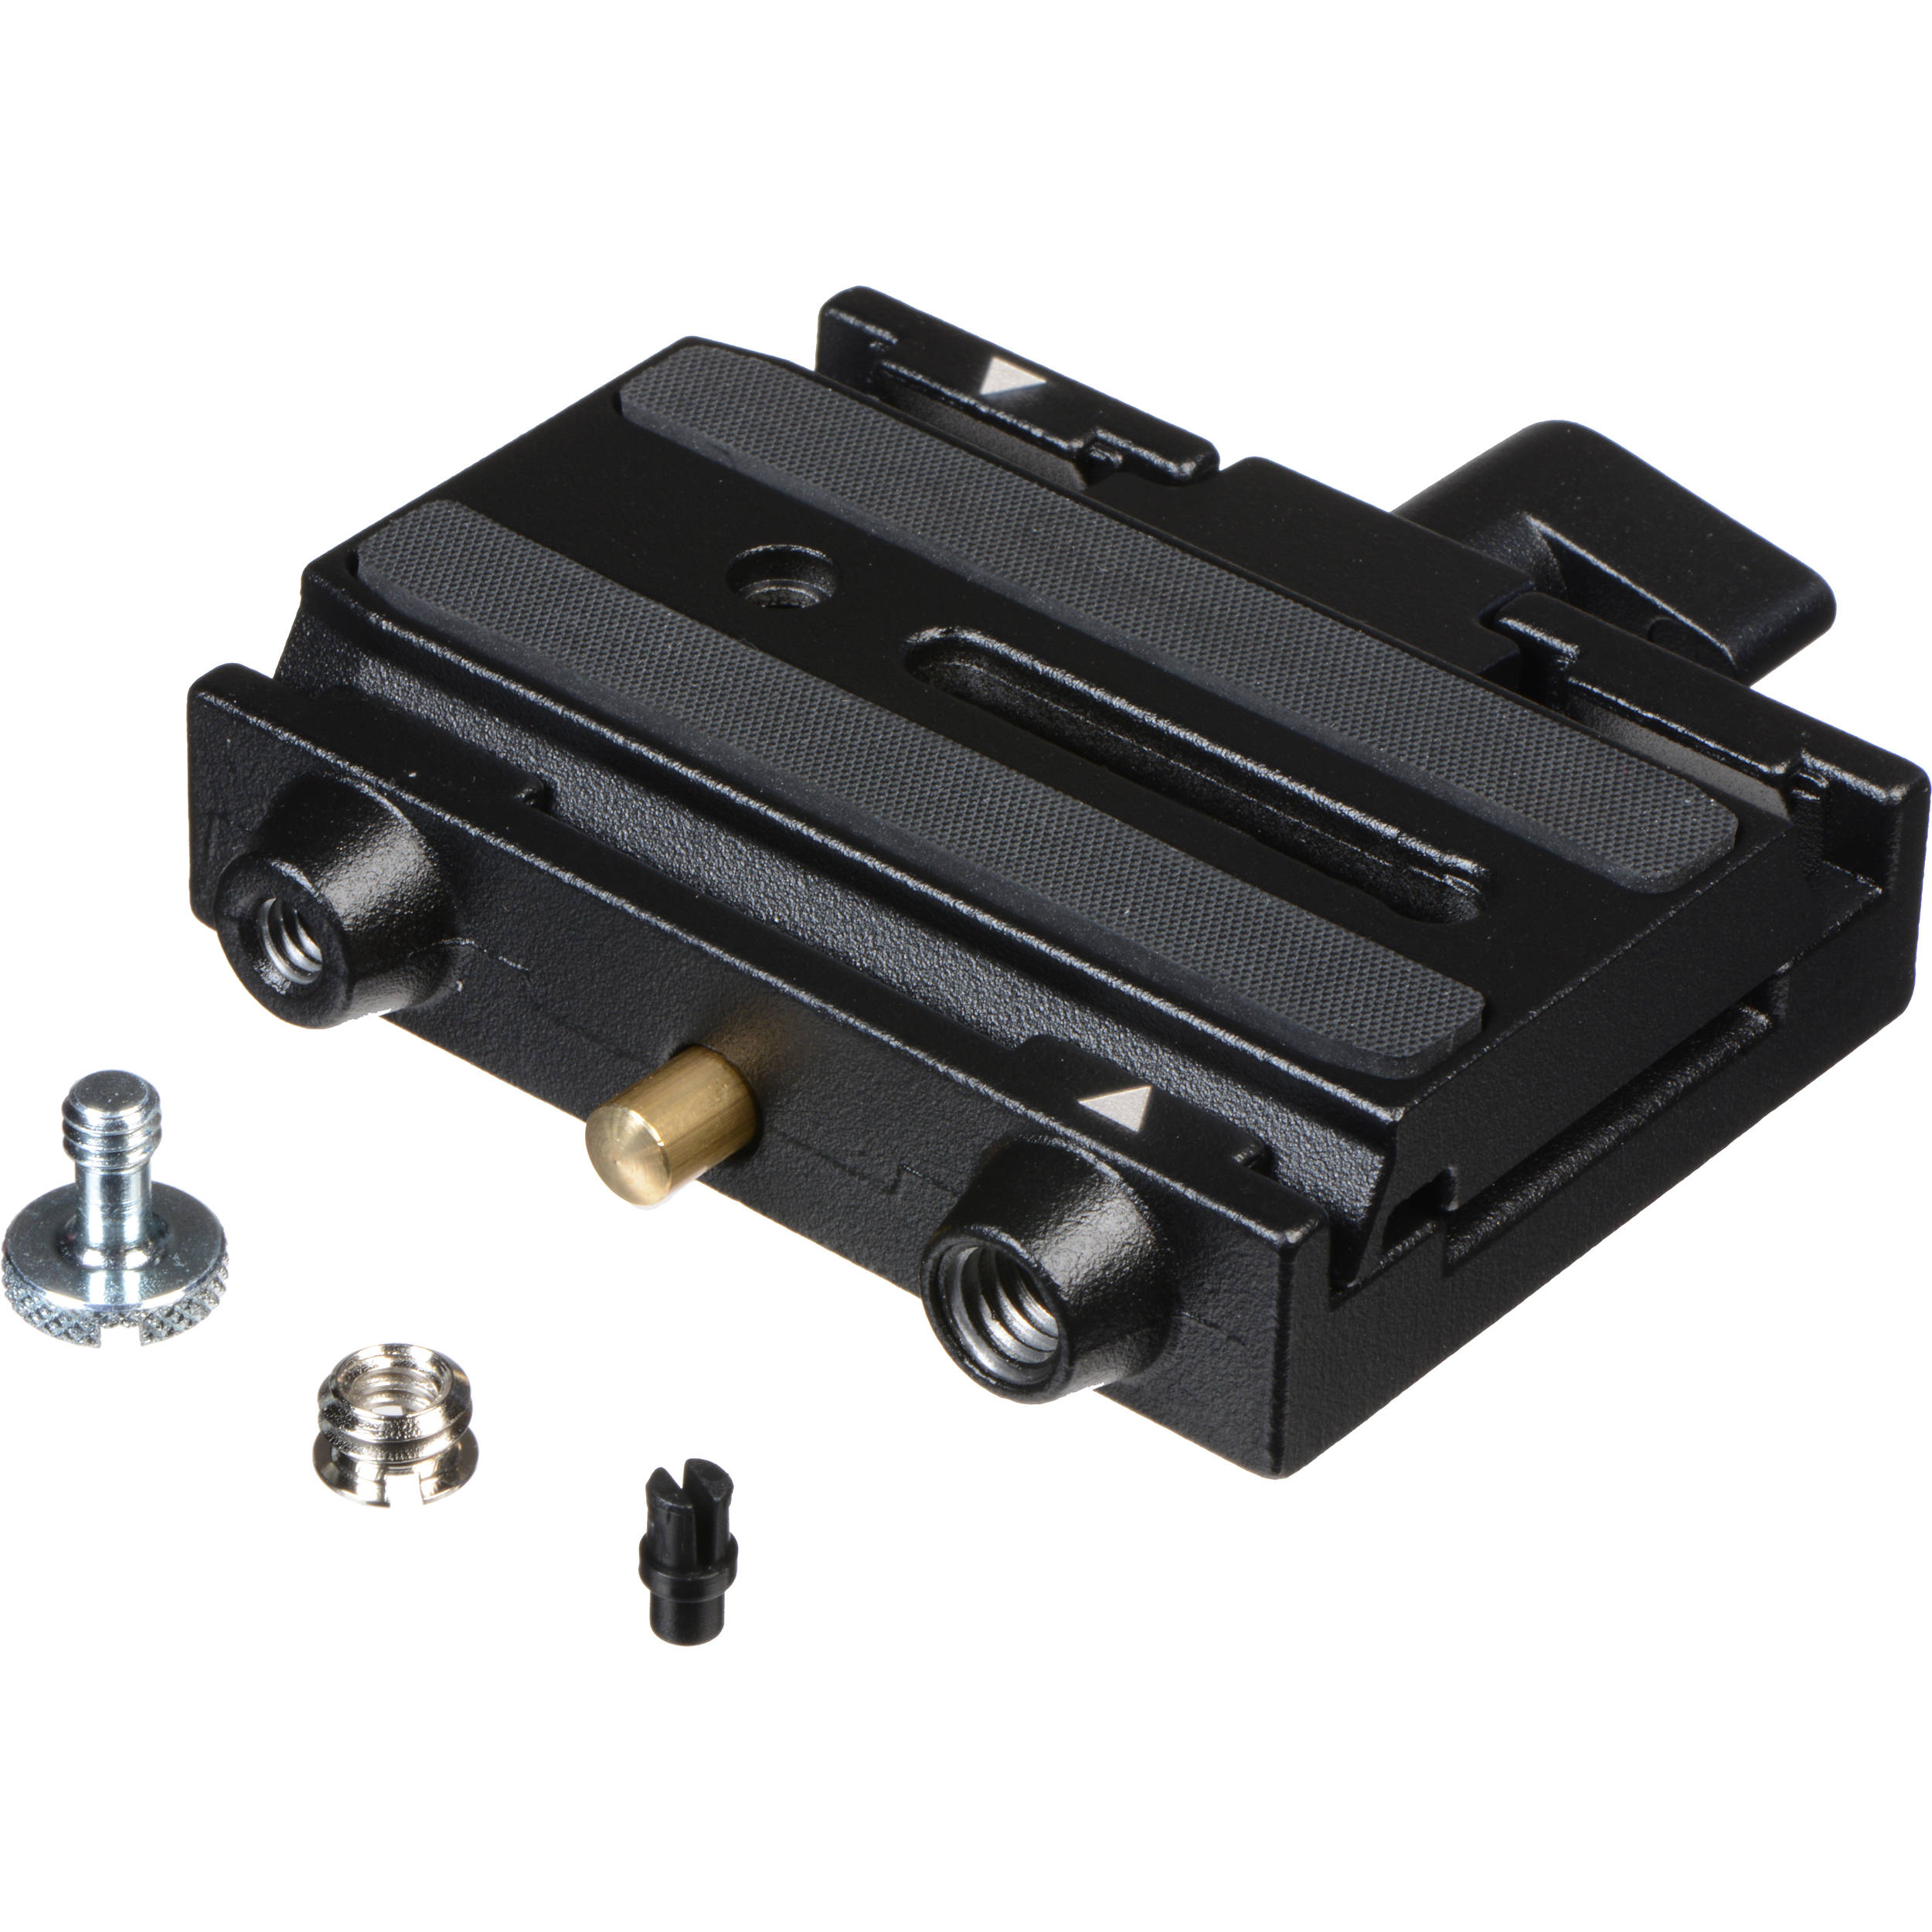 Manfrotto 577 Rapid Connect Adapter with Sliding Mounting Plate (501PL)